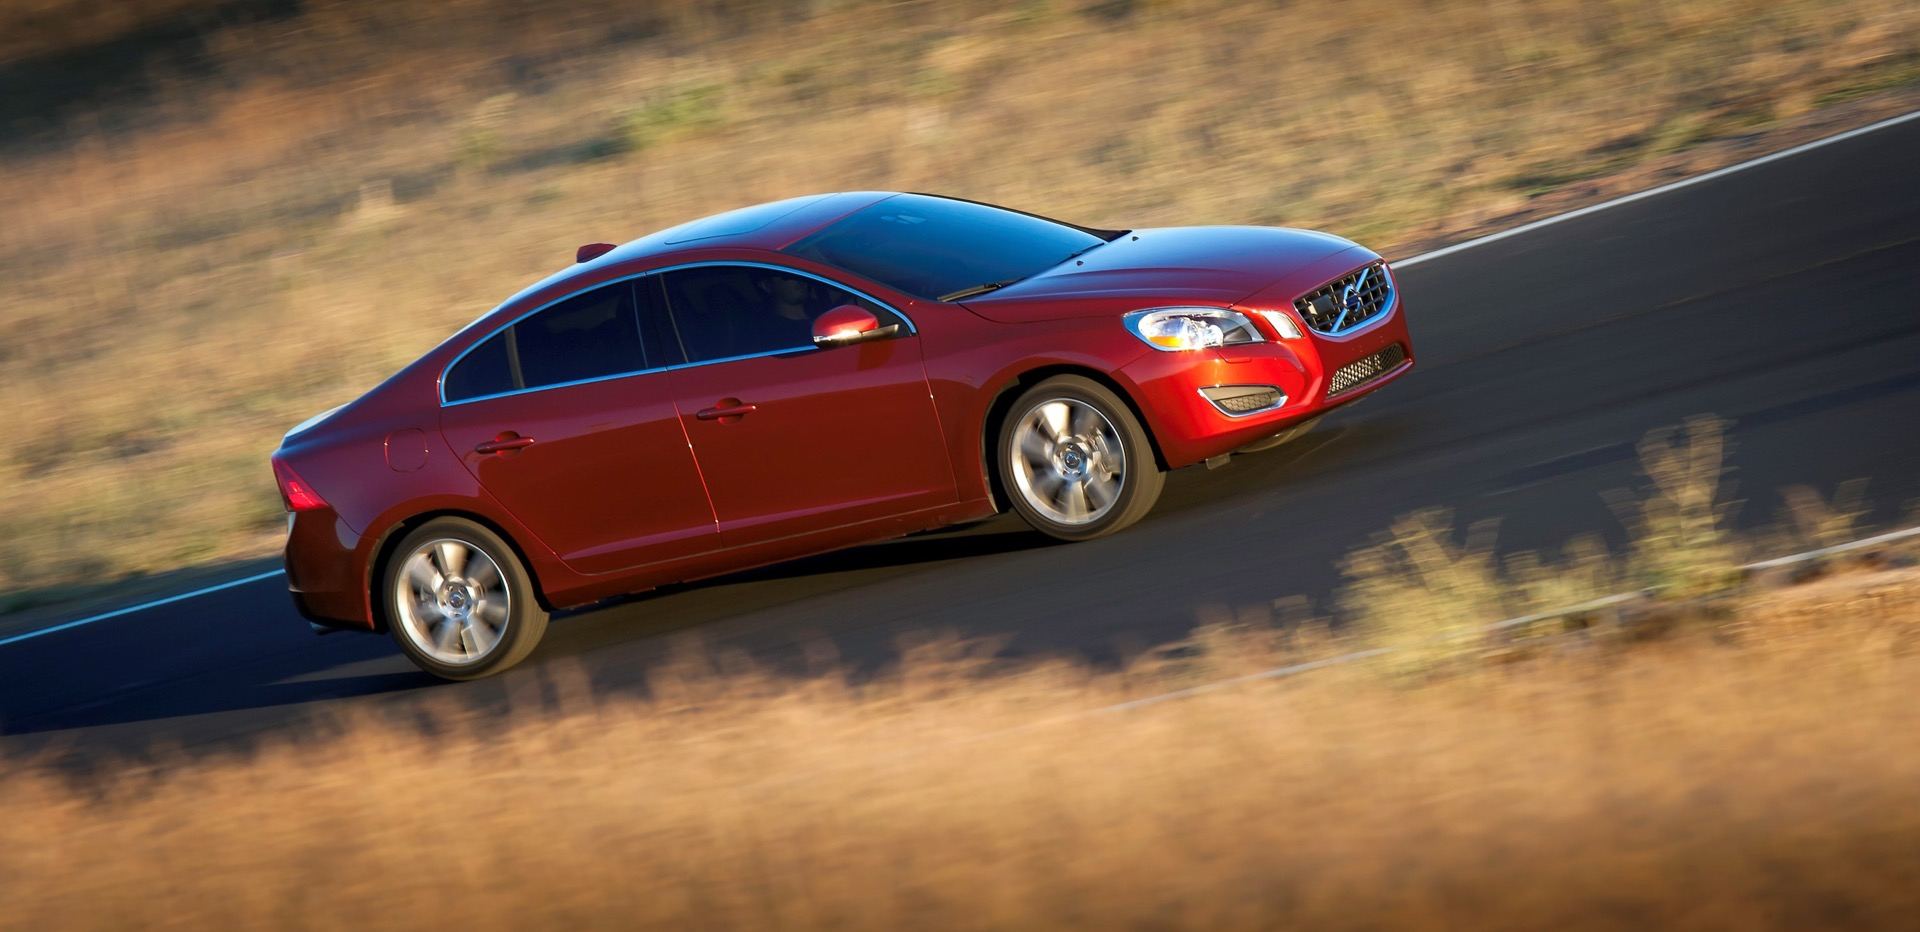 S60 T6 Awd Driving Action08 -  Volvo